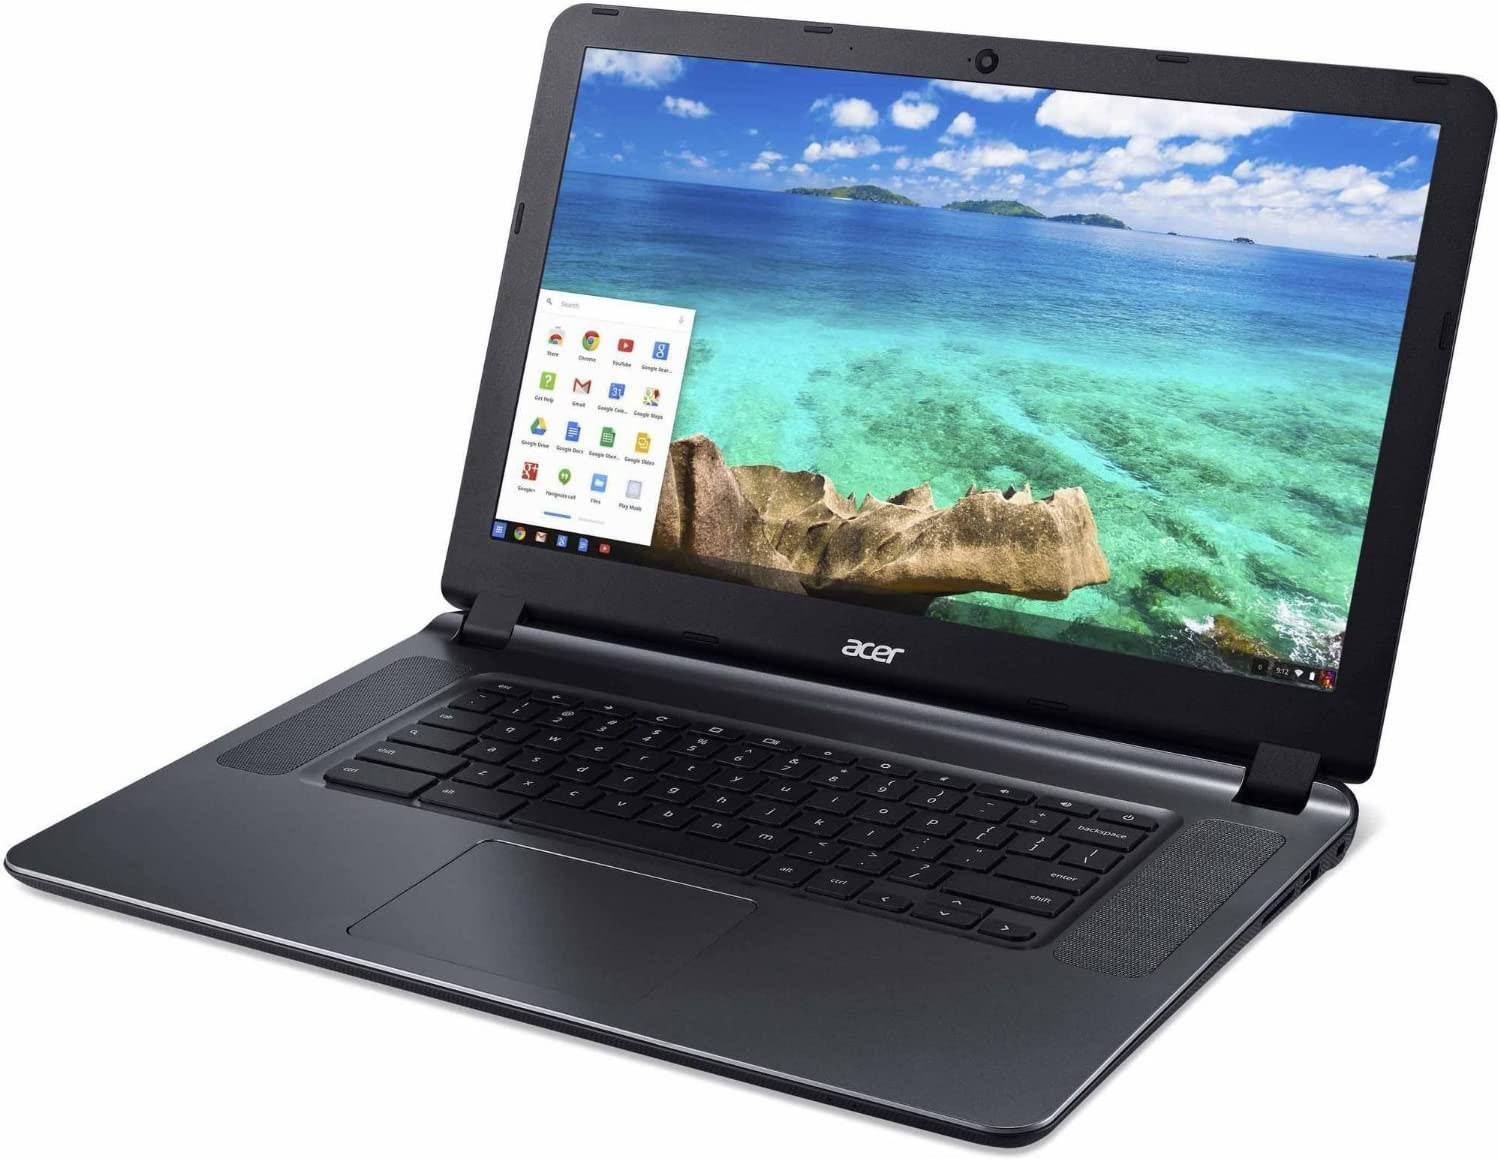 Acer 15.6in Premium HD Chromebook - Intel Dual-Core Celeron N3060 1.6 GHz, 2GB DDR3, 16GB Flash SSD, Webcam, Bluetooth, HDMI, USB 3.0, Chrome OS (Renewed)